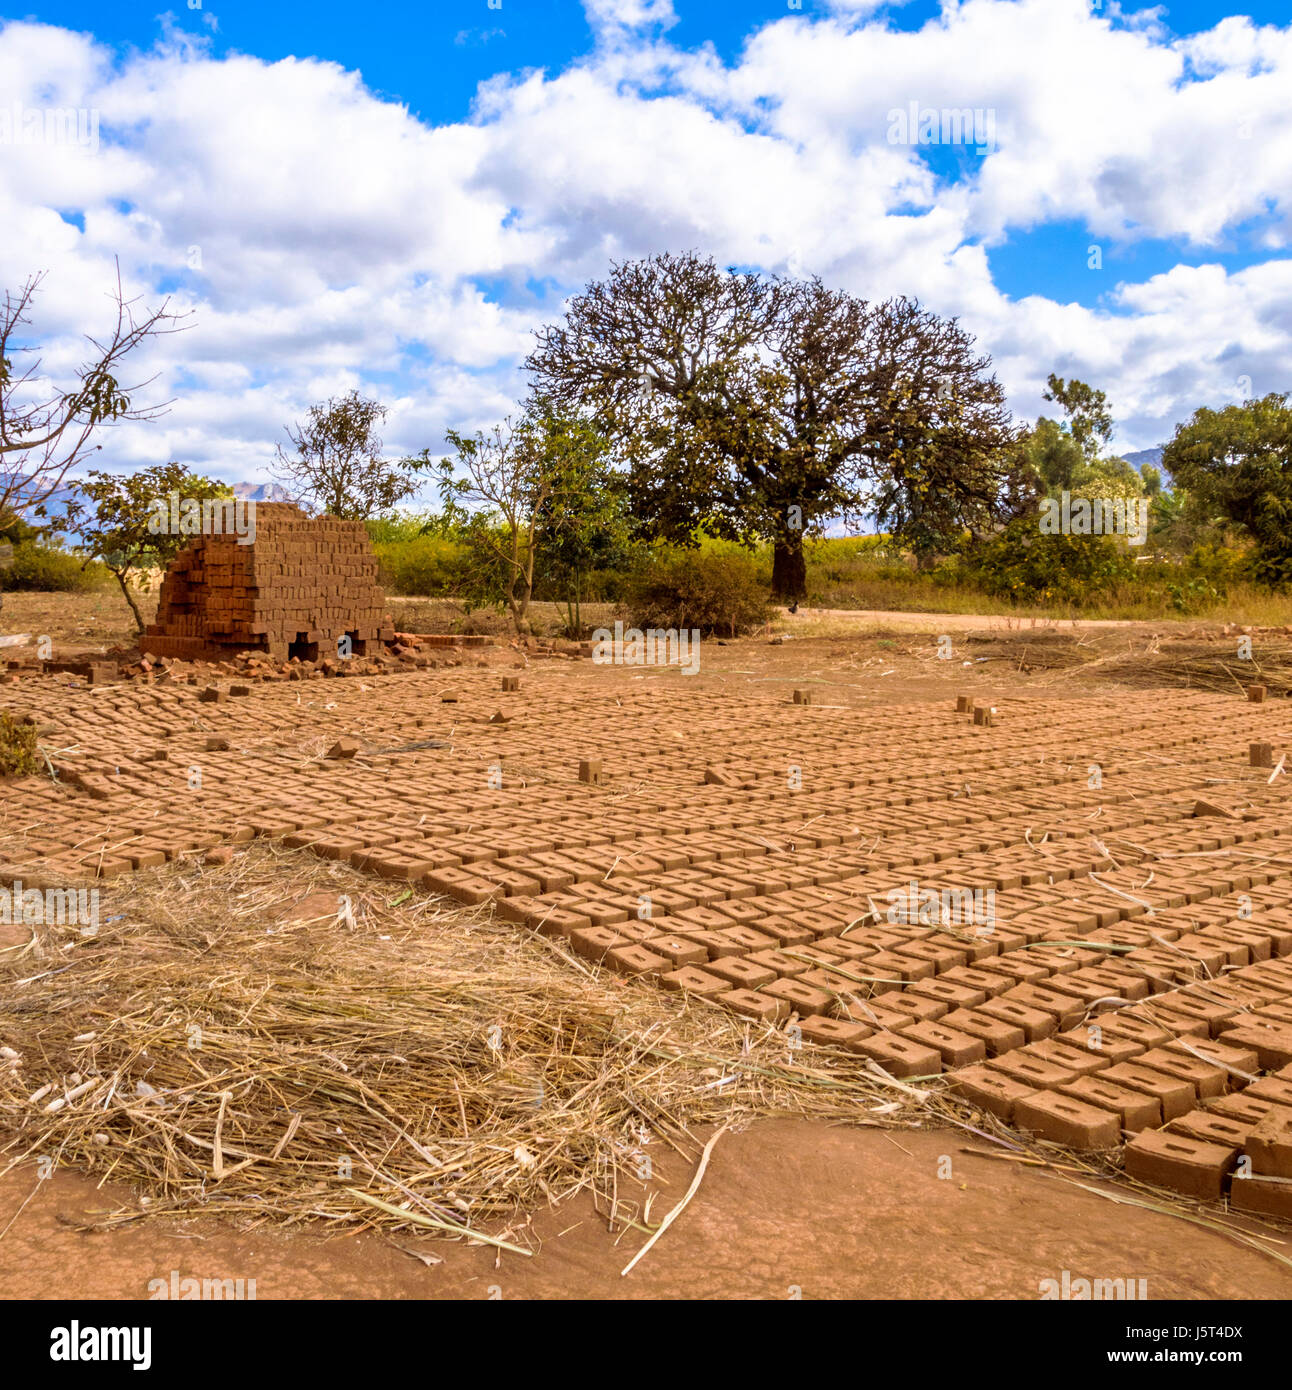 Hand made mud bricks drying in the sun in front of a kiln for burning bricks in a rural village in Malawi, Africa - Stock Image